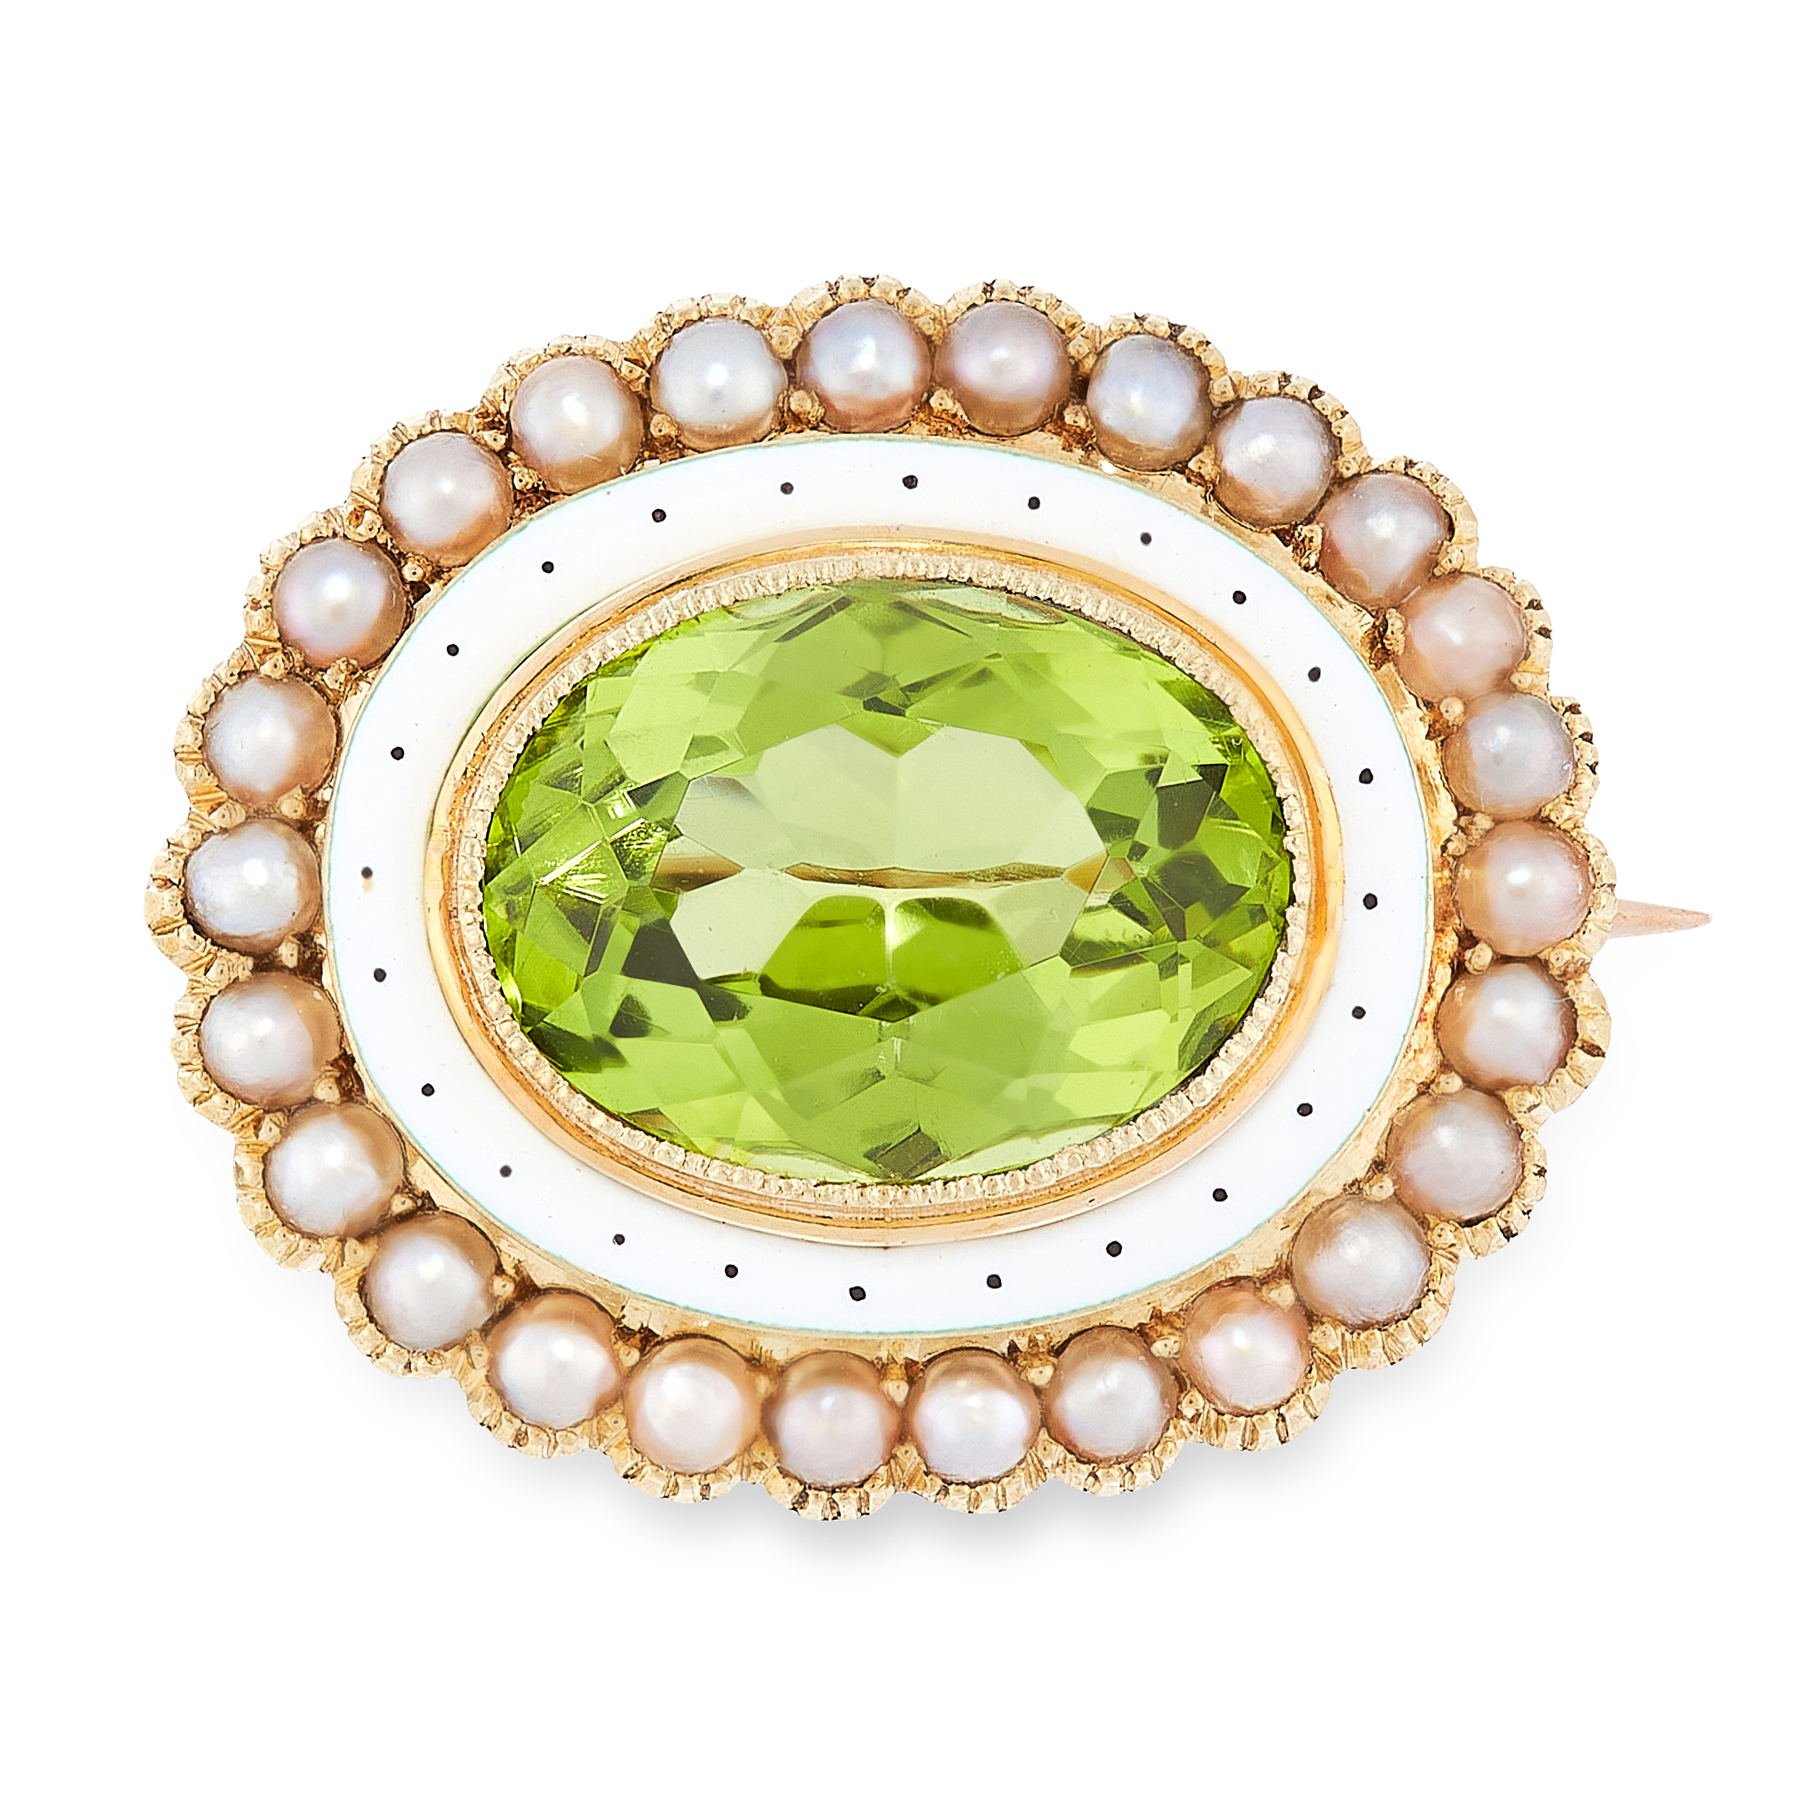 AN ANTIQUE PERIDOT, PEARL AND ENAMEL BROOCH in 15ct yellow gold, set with an oval cut peridot of 4.